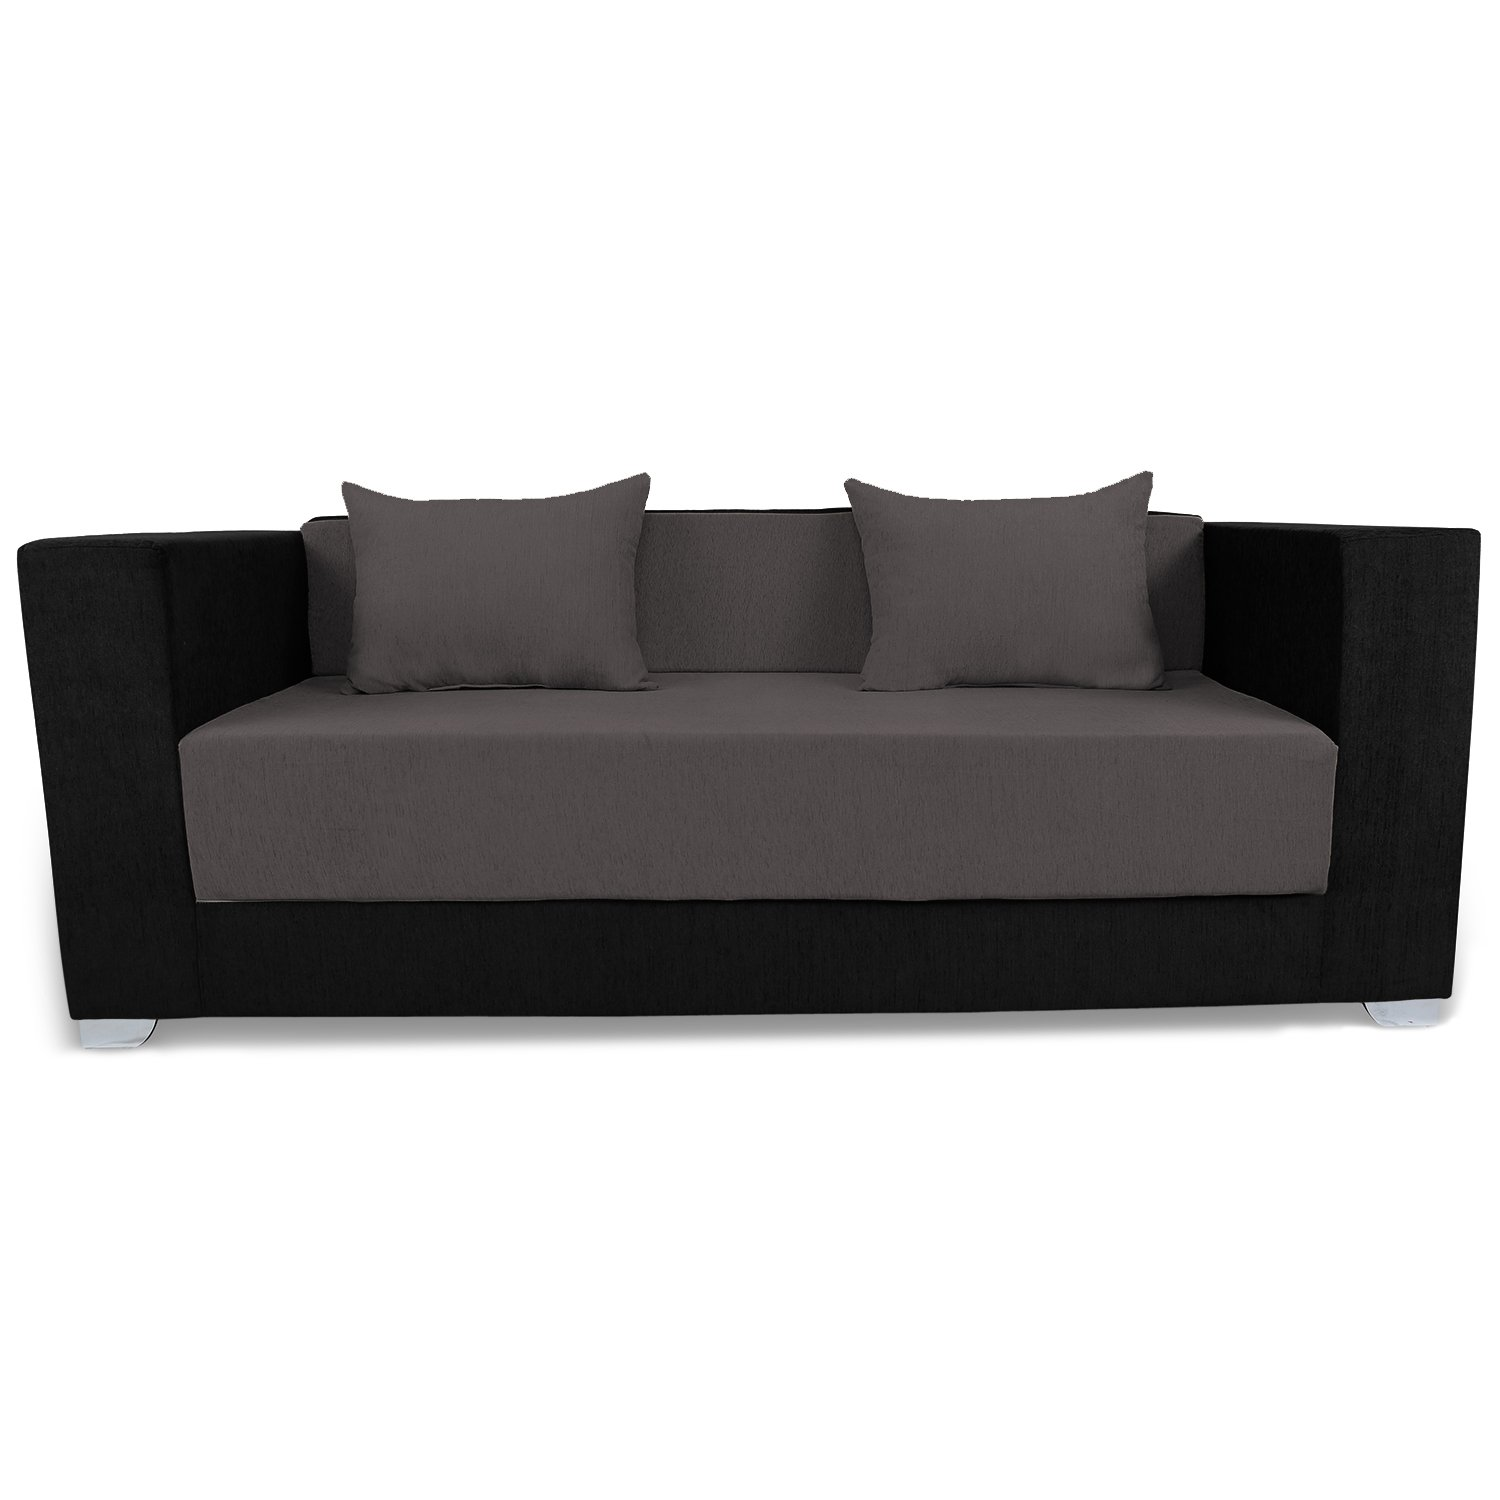 Adorn India Almond 3 Seater Sofa Cumbed Grey Black